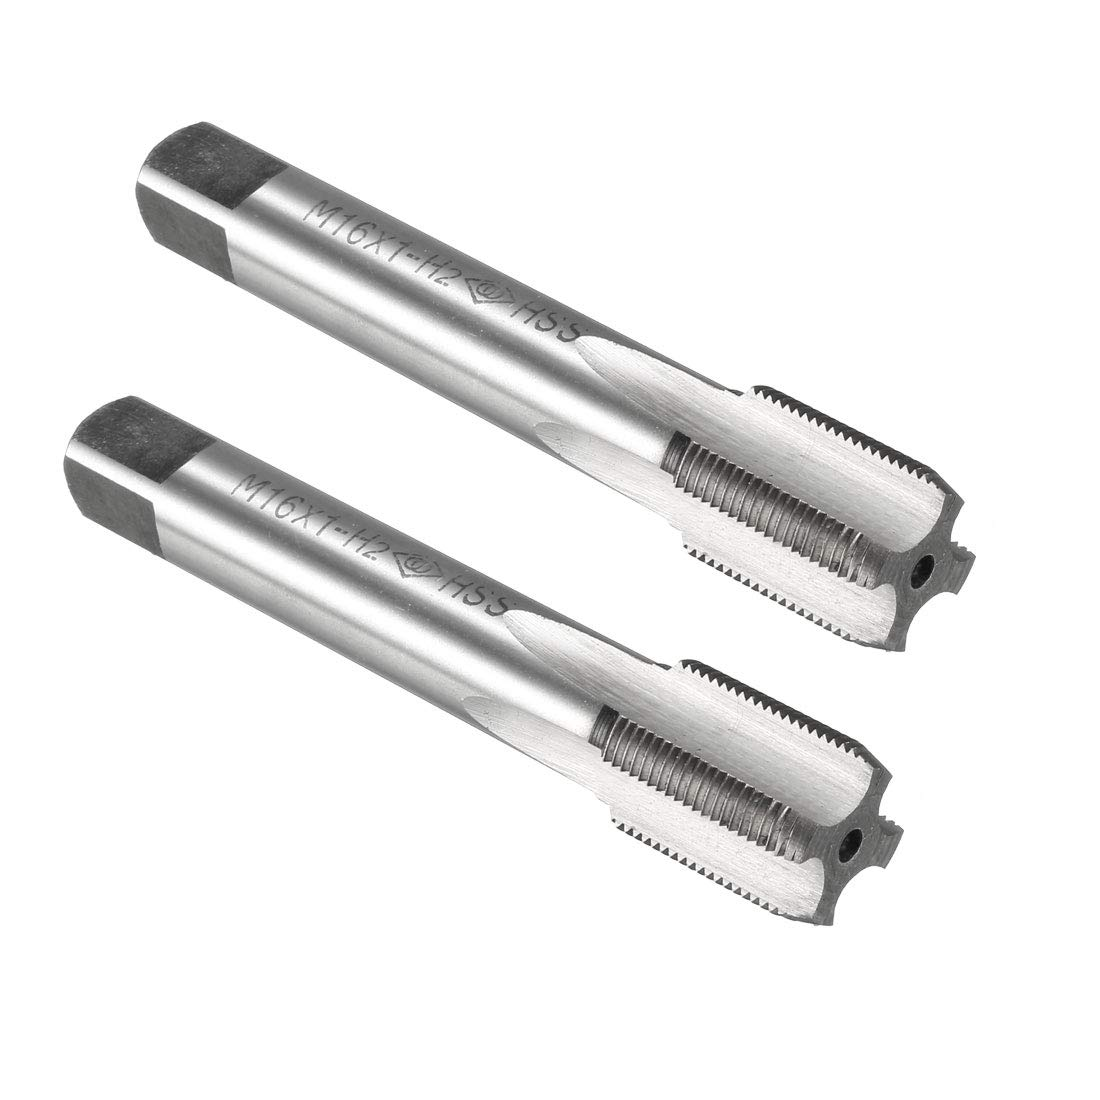 uxcell/® Metric Taps M16 x 1.5mm Pitch H2 Right Hand Thread Plug Tap HSS for Threading Machine Electric Drill DIY